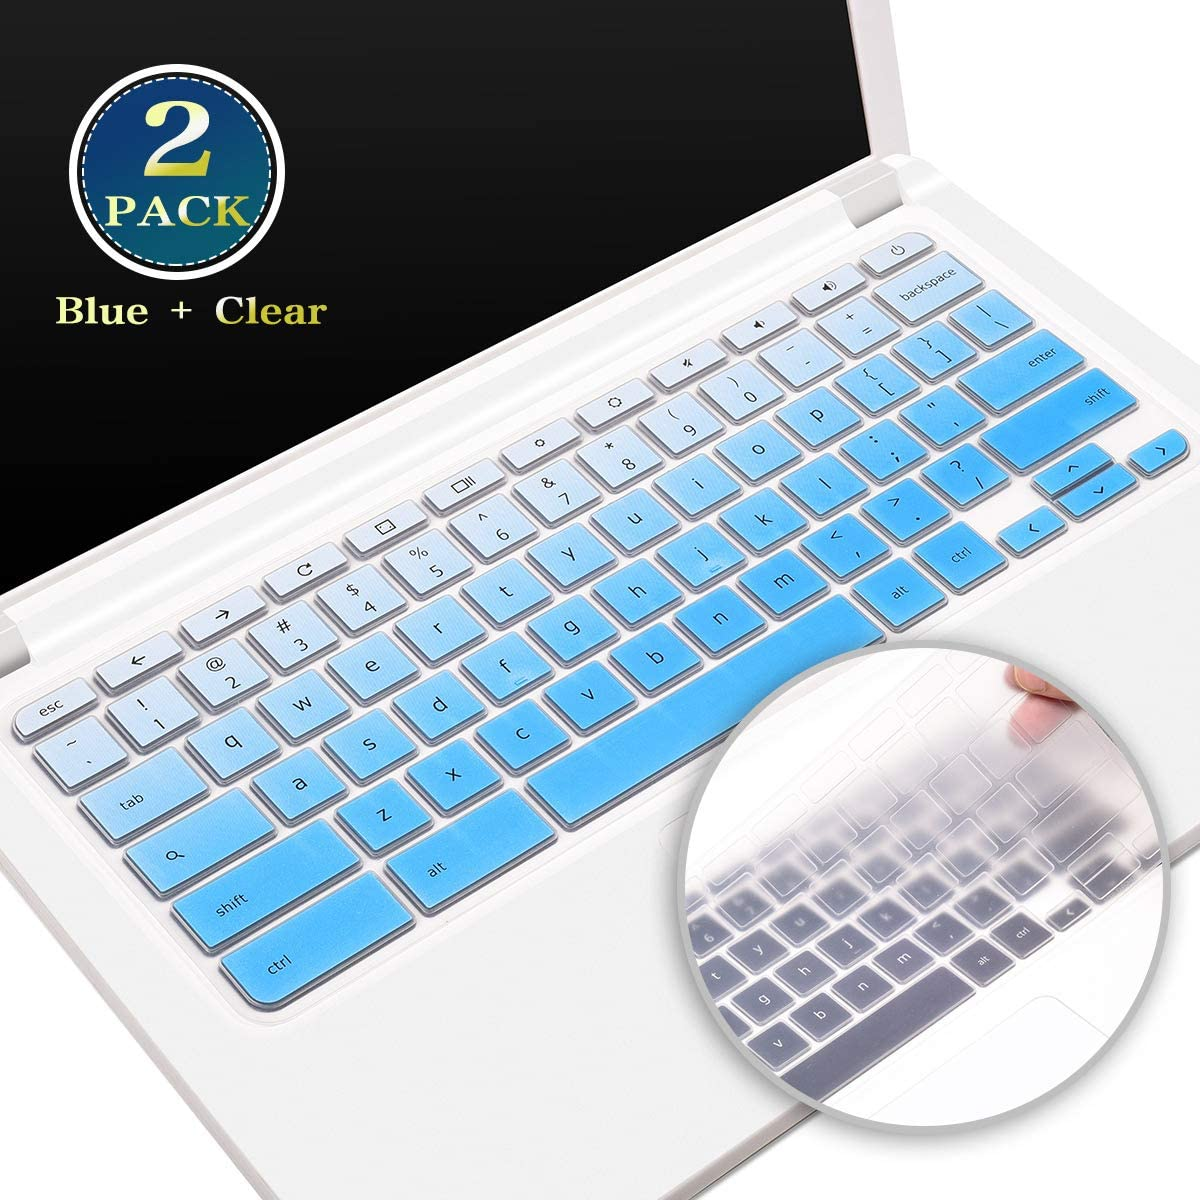 "2 Pack Silicone Keyboard Cover Skin for 2020 2019 2018 Acer 11.6 inch Chromebook CB3-132 CB3-131 Series, Acer Chromebook Spin 11 CP311, Acer Premium R11 Chromebook 11.6"" (Ombre Blue+Clear)"